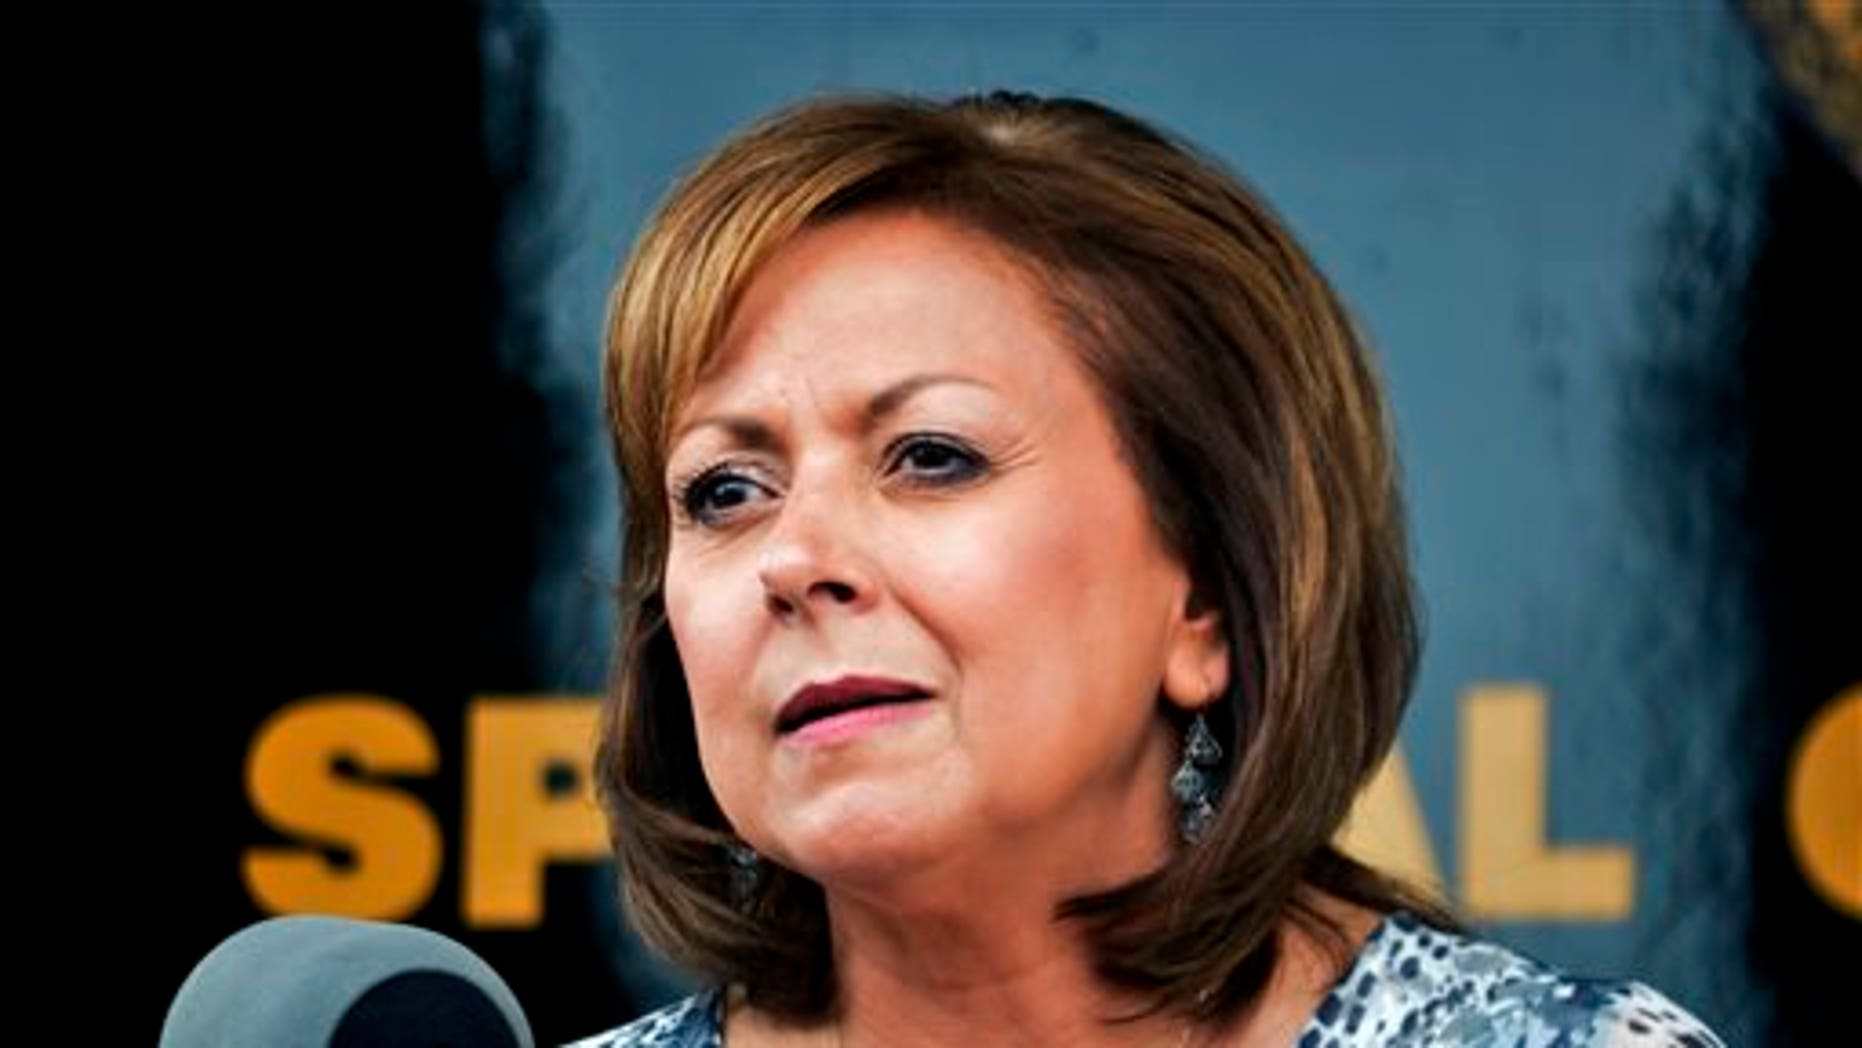 FILE - In this Sept. 4, 2015 file photo, New Mexico Gov. Susana Martinez speaks at a news conference in Albuquerque. Martinez finally got lawmakers to pass her long-sought revision of a state law that grants drivers licenses to immigrants in the country illegally. (AP Photo/Russell Contreras, File)